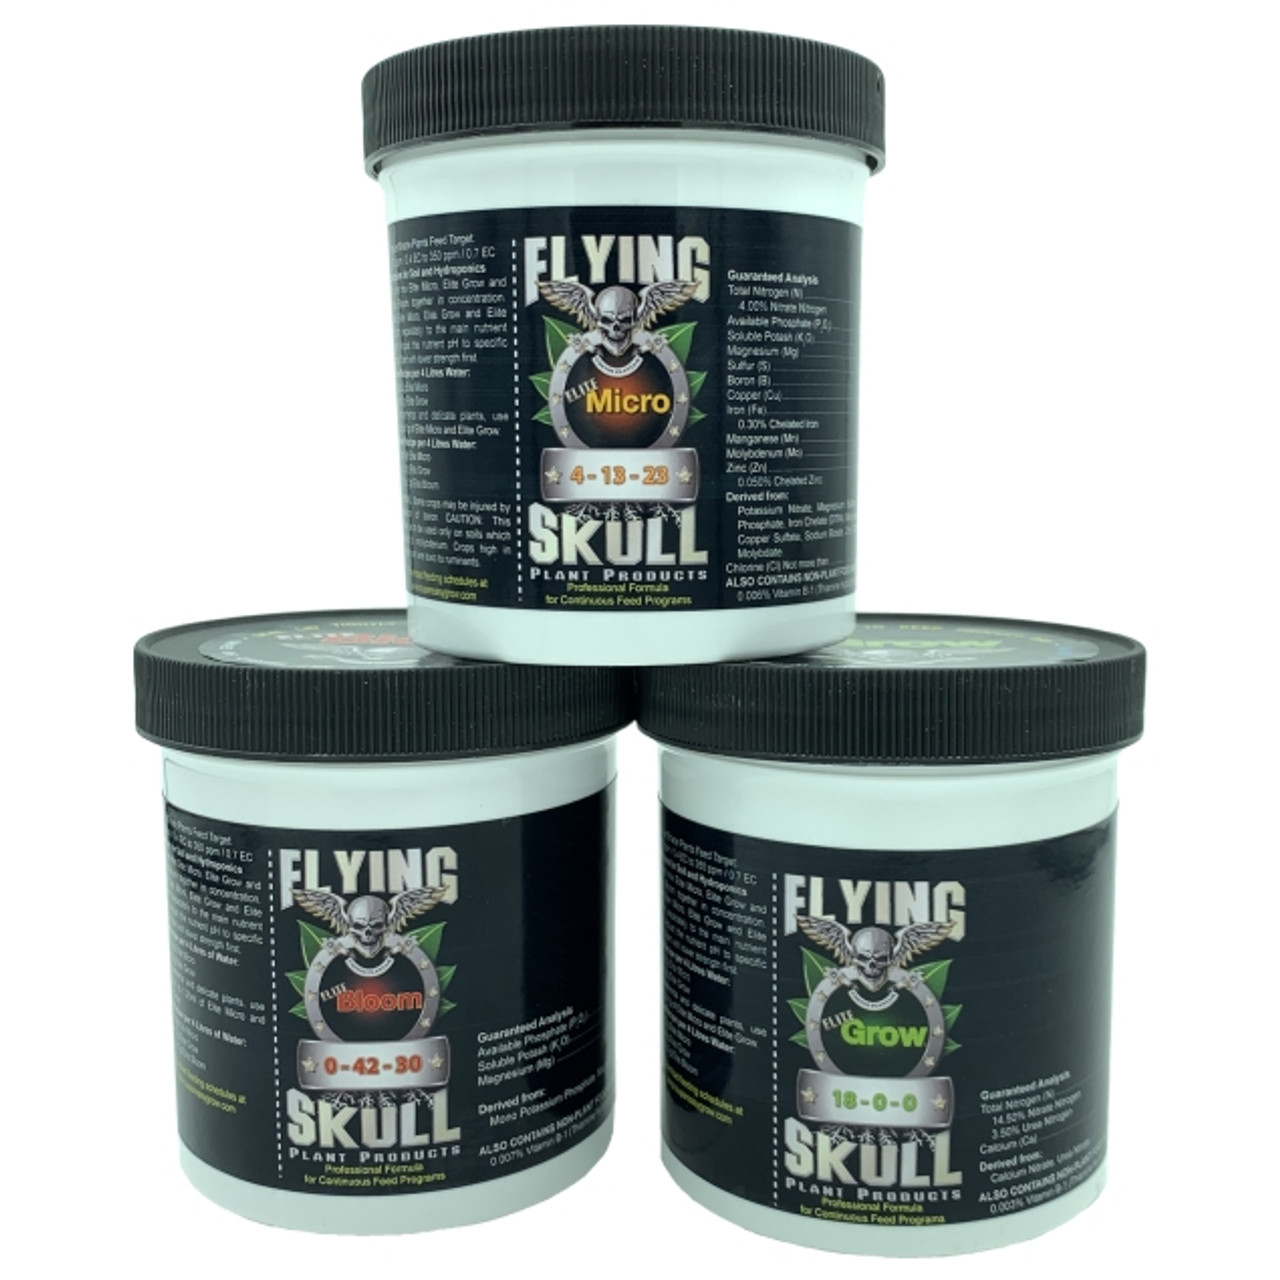 Flying Skull Elite Plant Food Range - Elite Micro, Elite Grow, Elite Bloom